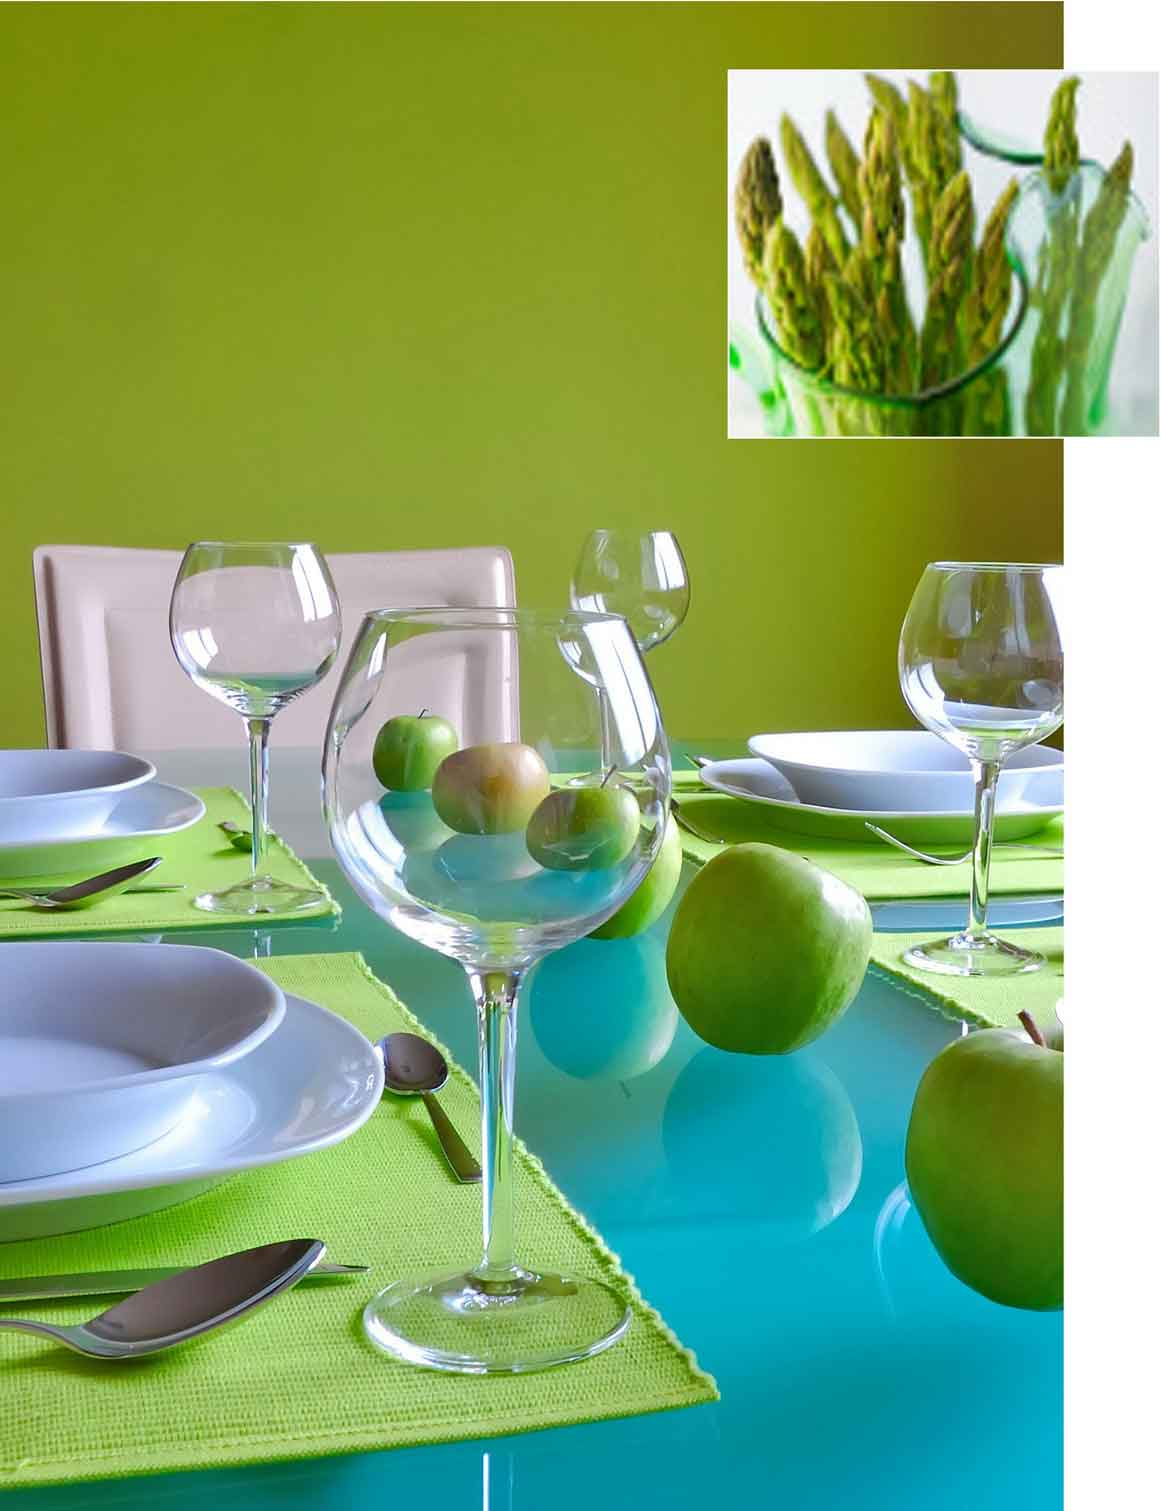 Light green and aqua dining room, with green apples on the table in a row